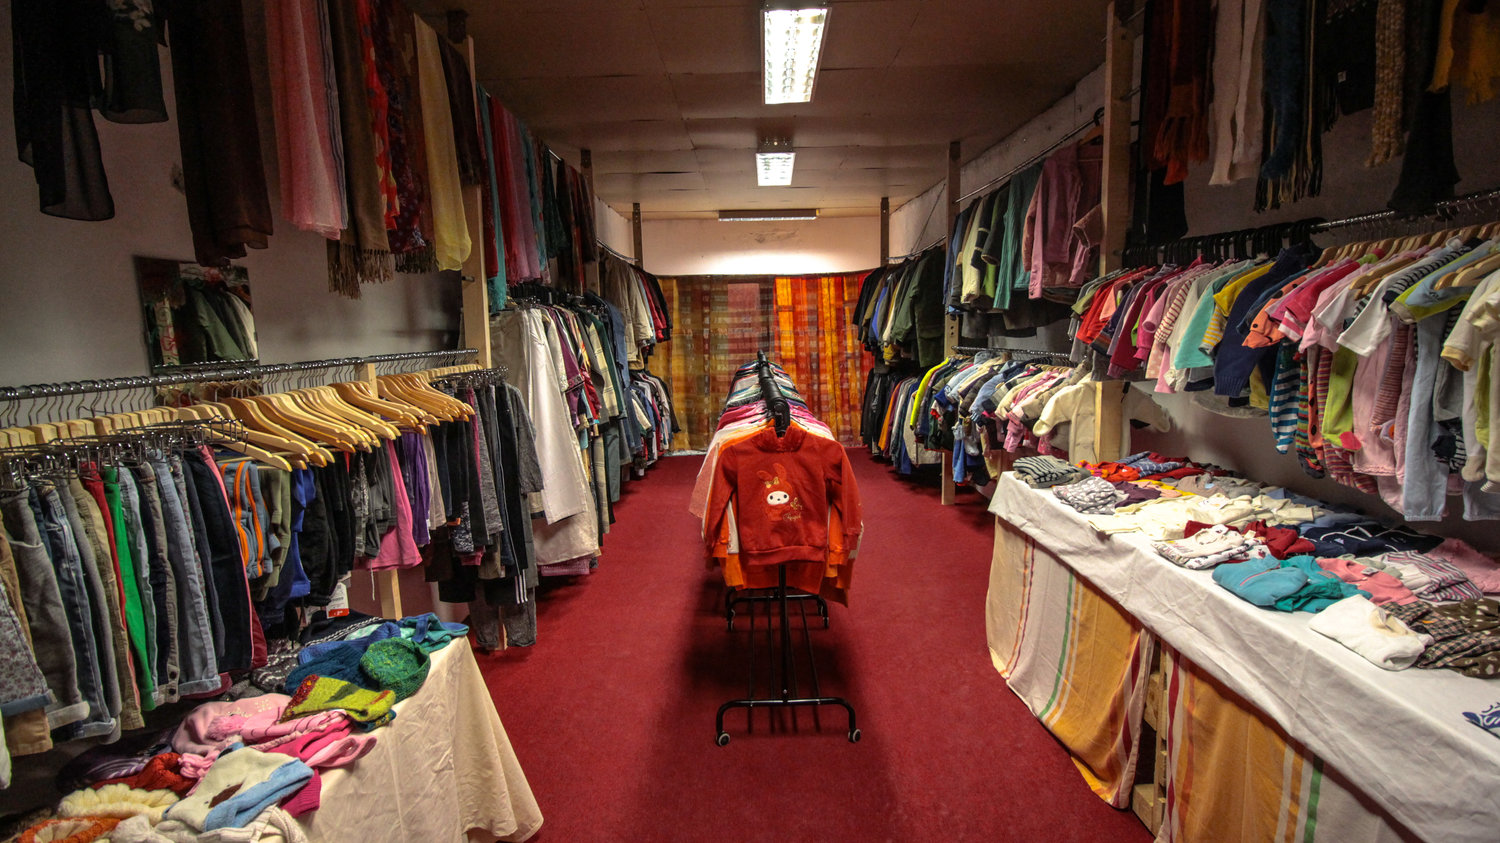 The Clothes Shop stocked and ready for residents to try out, this is how it looked after the guys from  Refugees Foundation, e.V. Support for Refugees on the Ru n came and fitted a ceiling with storage ontop